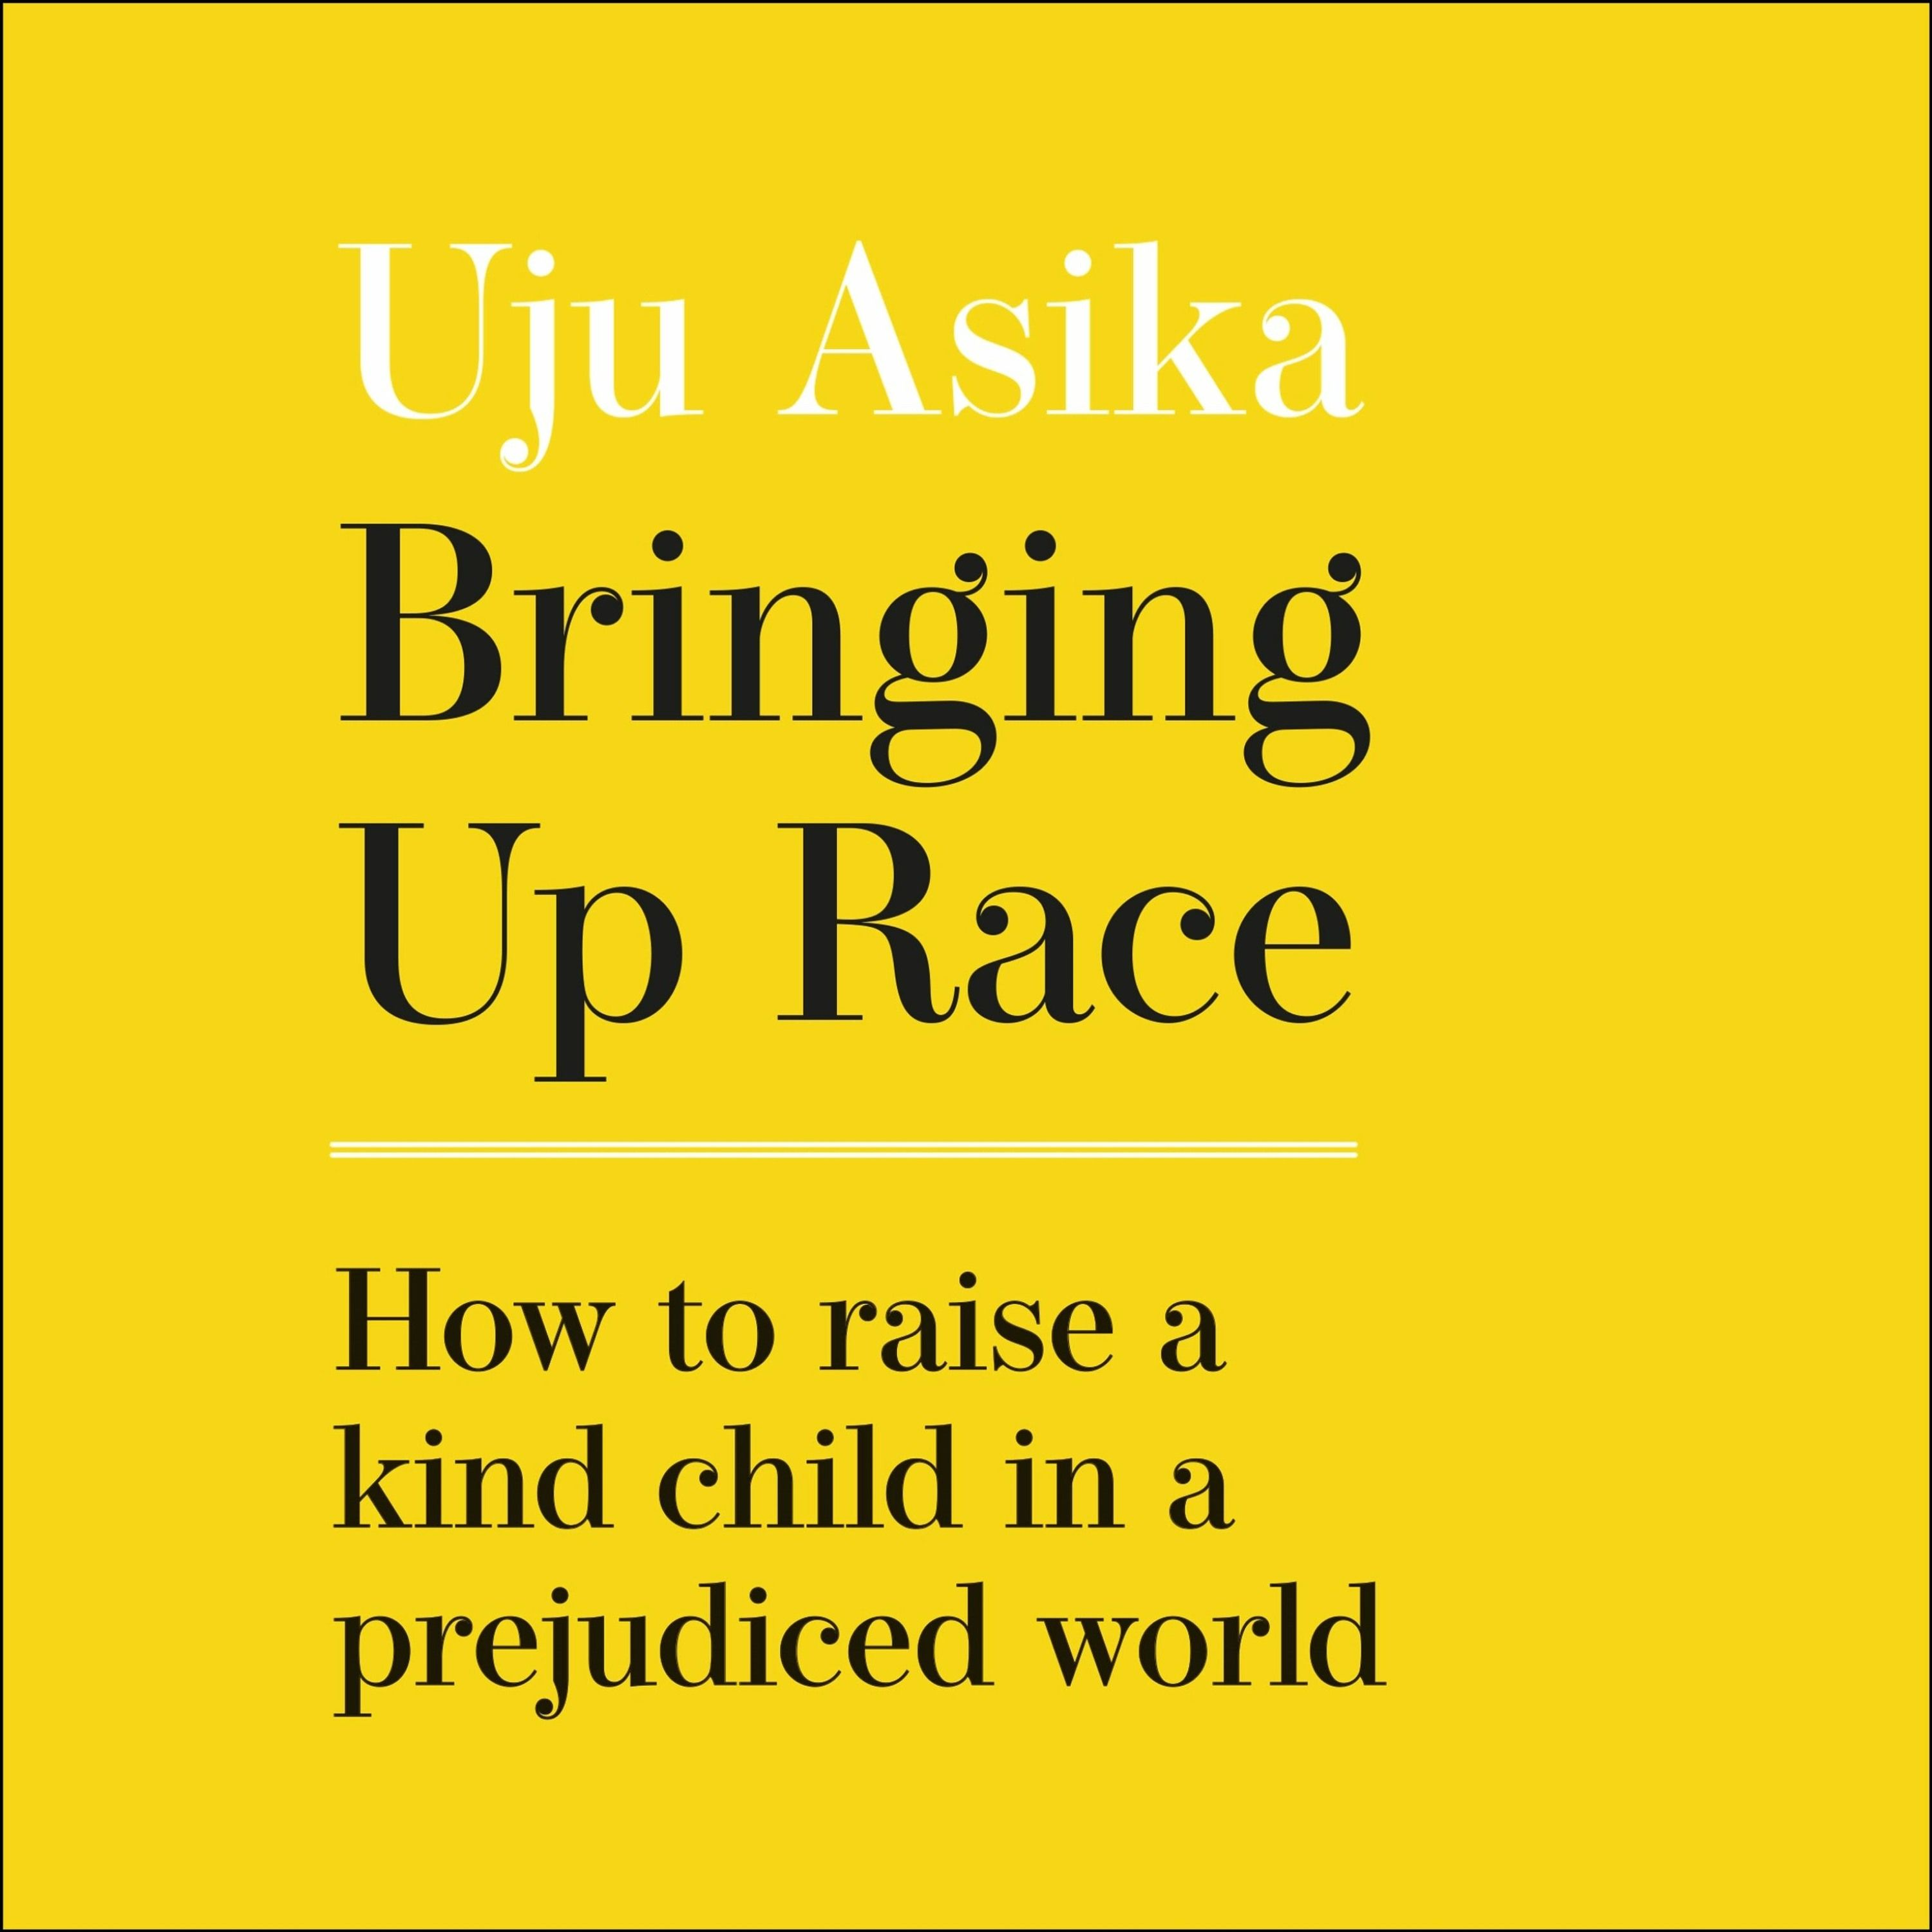 BRINGING UP RACE, written and read by Uju Asika - Audiobook extract